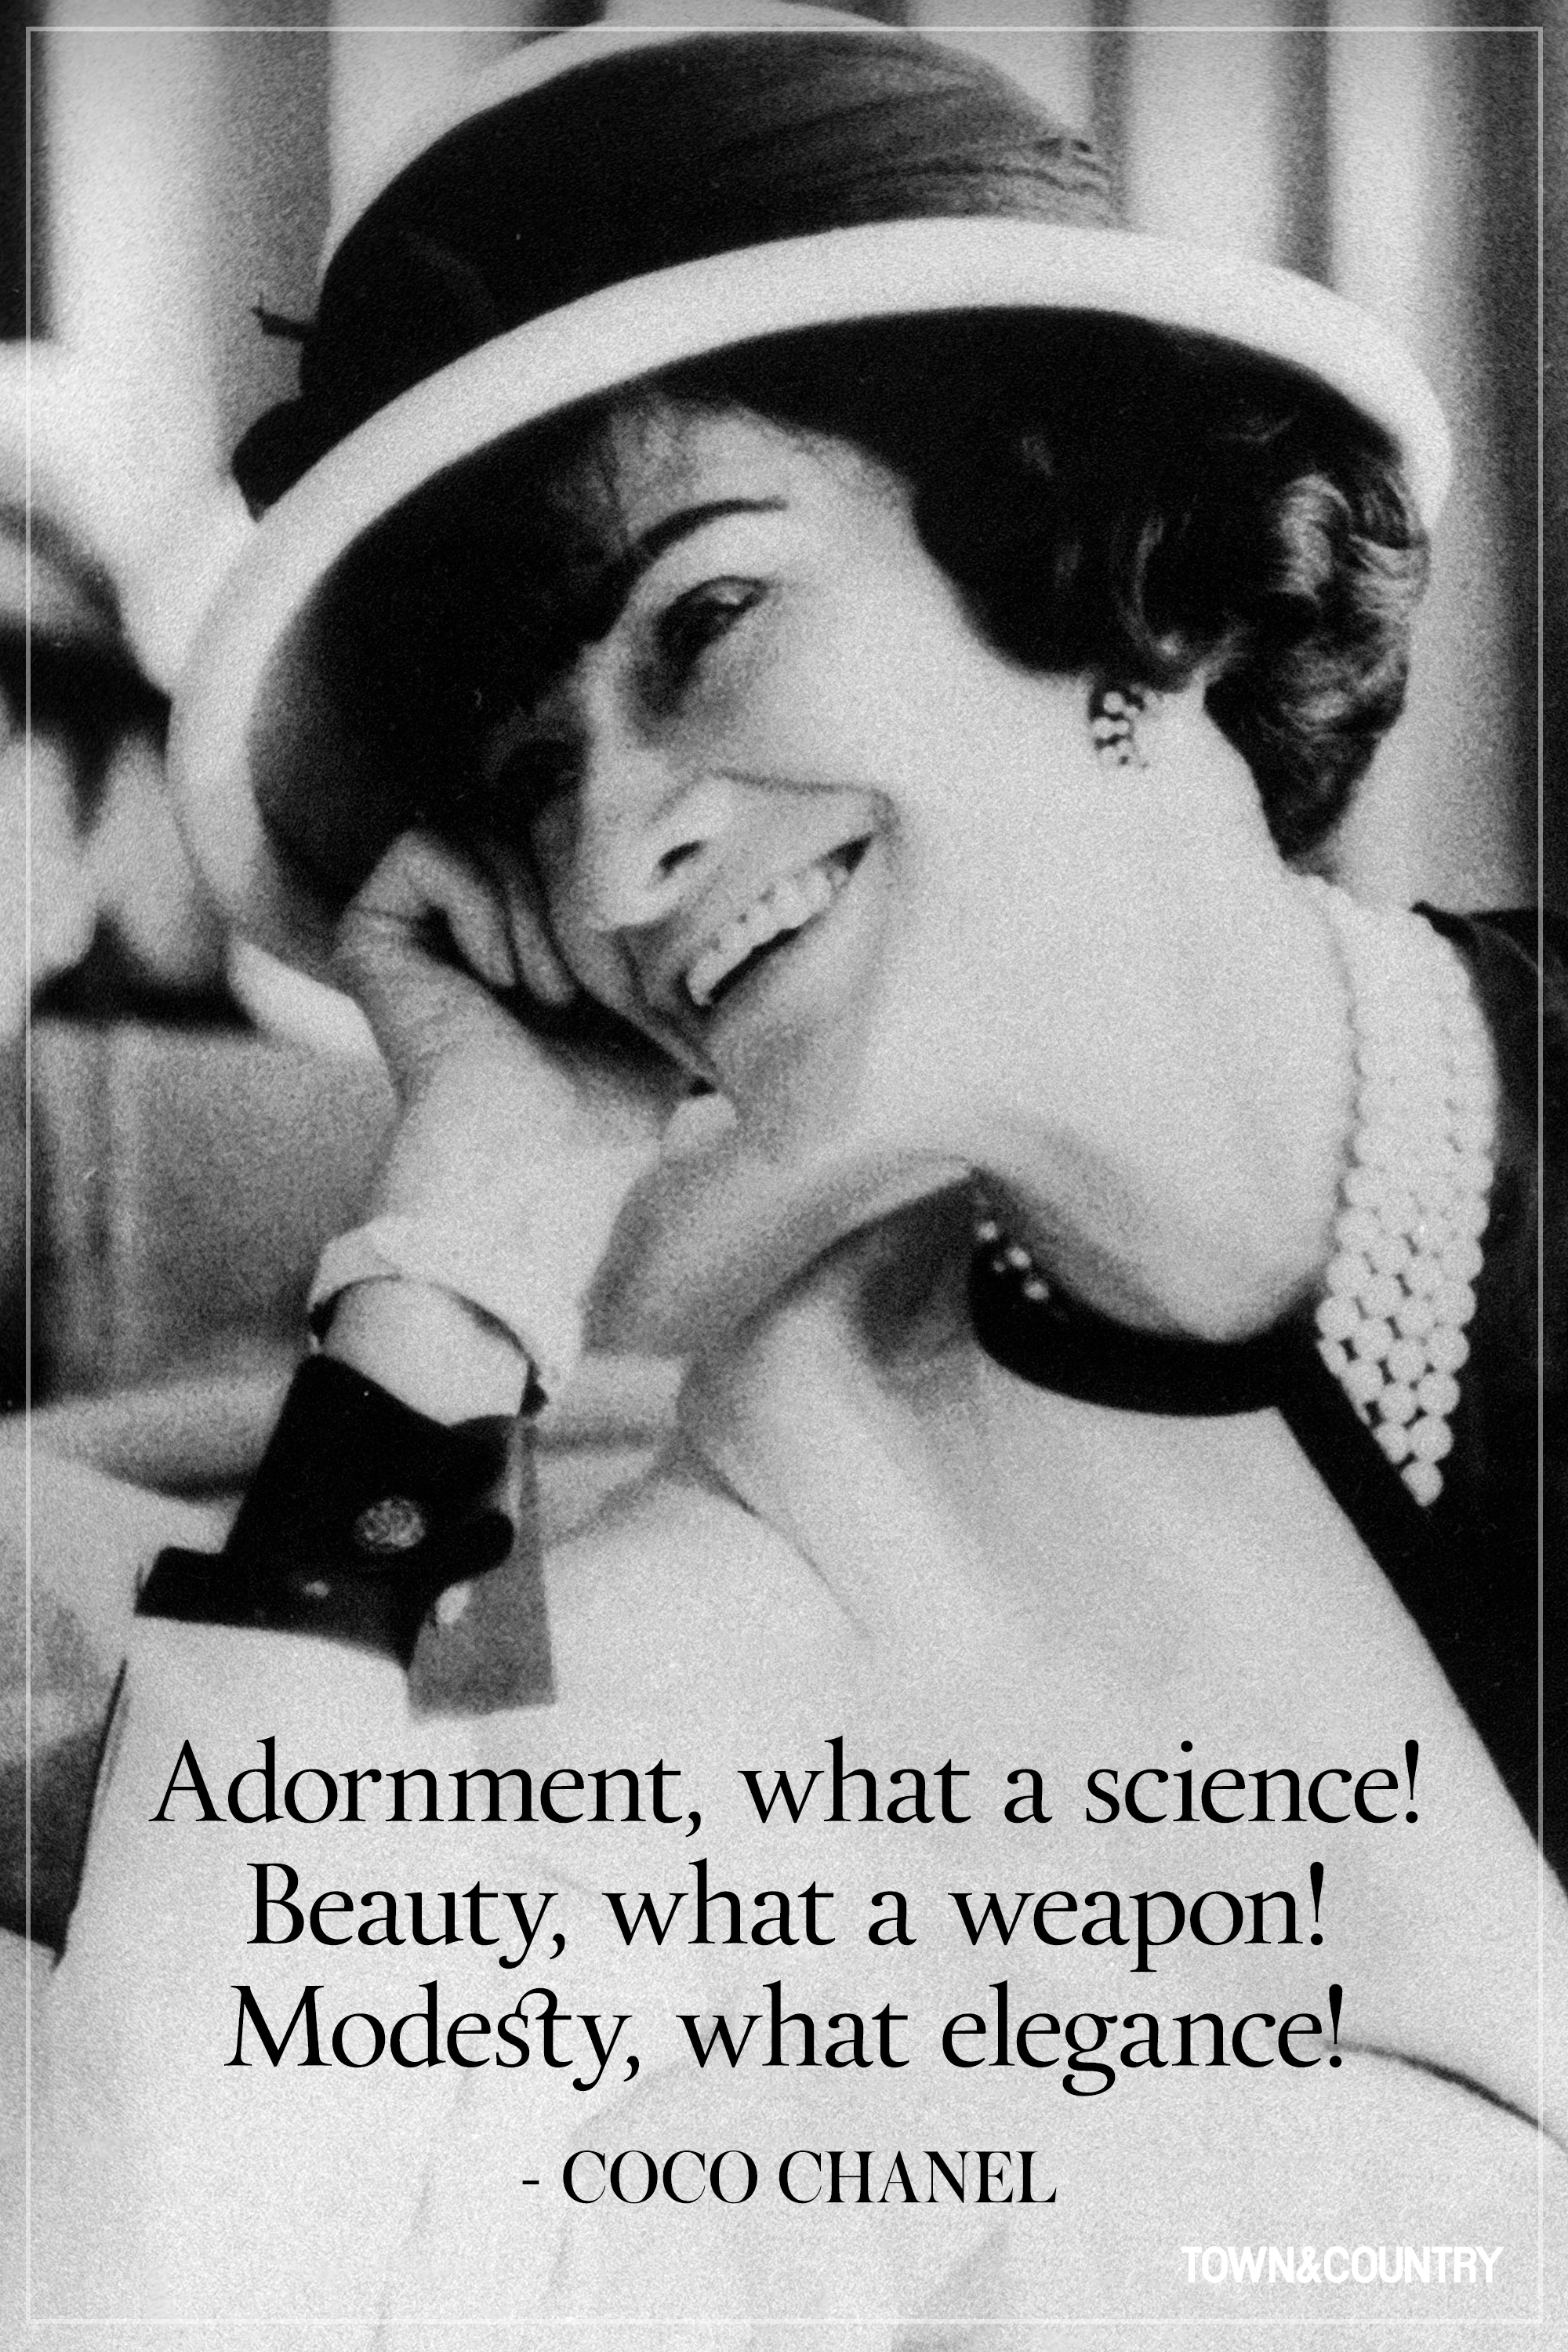 14 coco chanel quotes every woman should live by. Black Bedroom Furniture Sets. Home Design Ideas